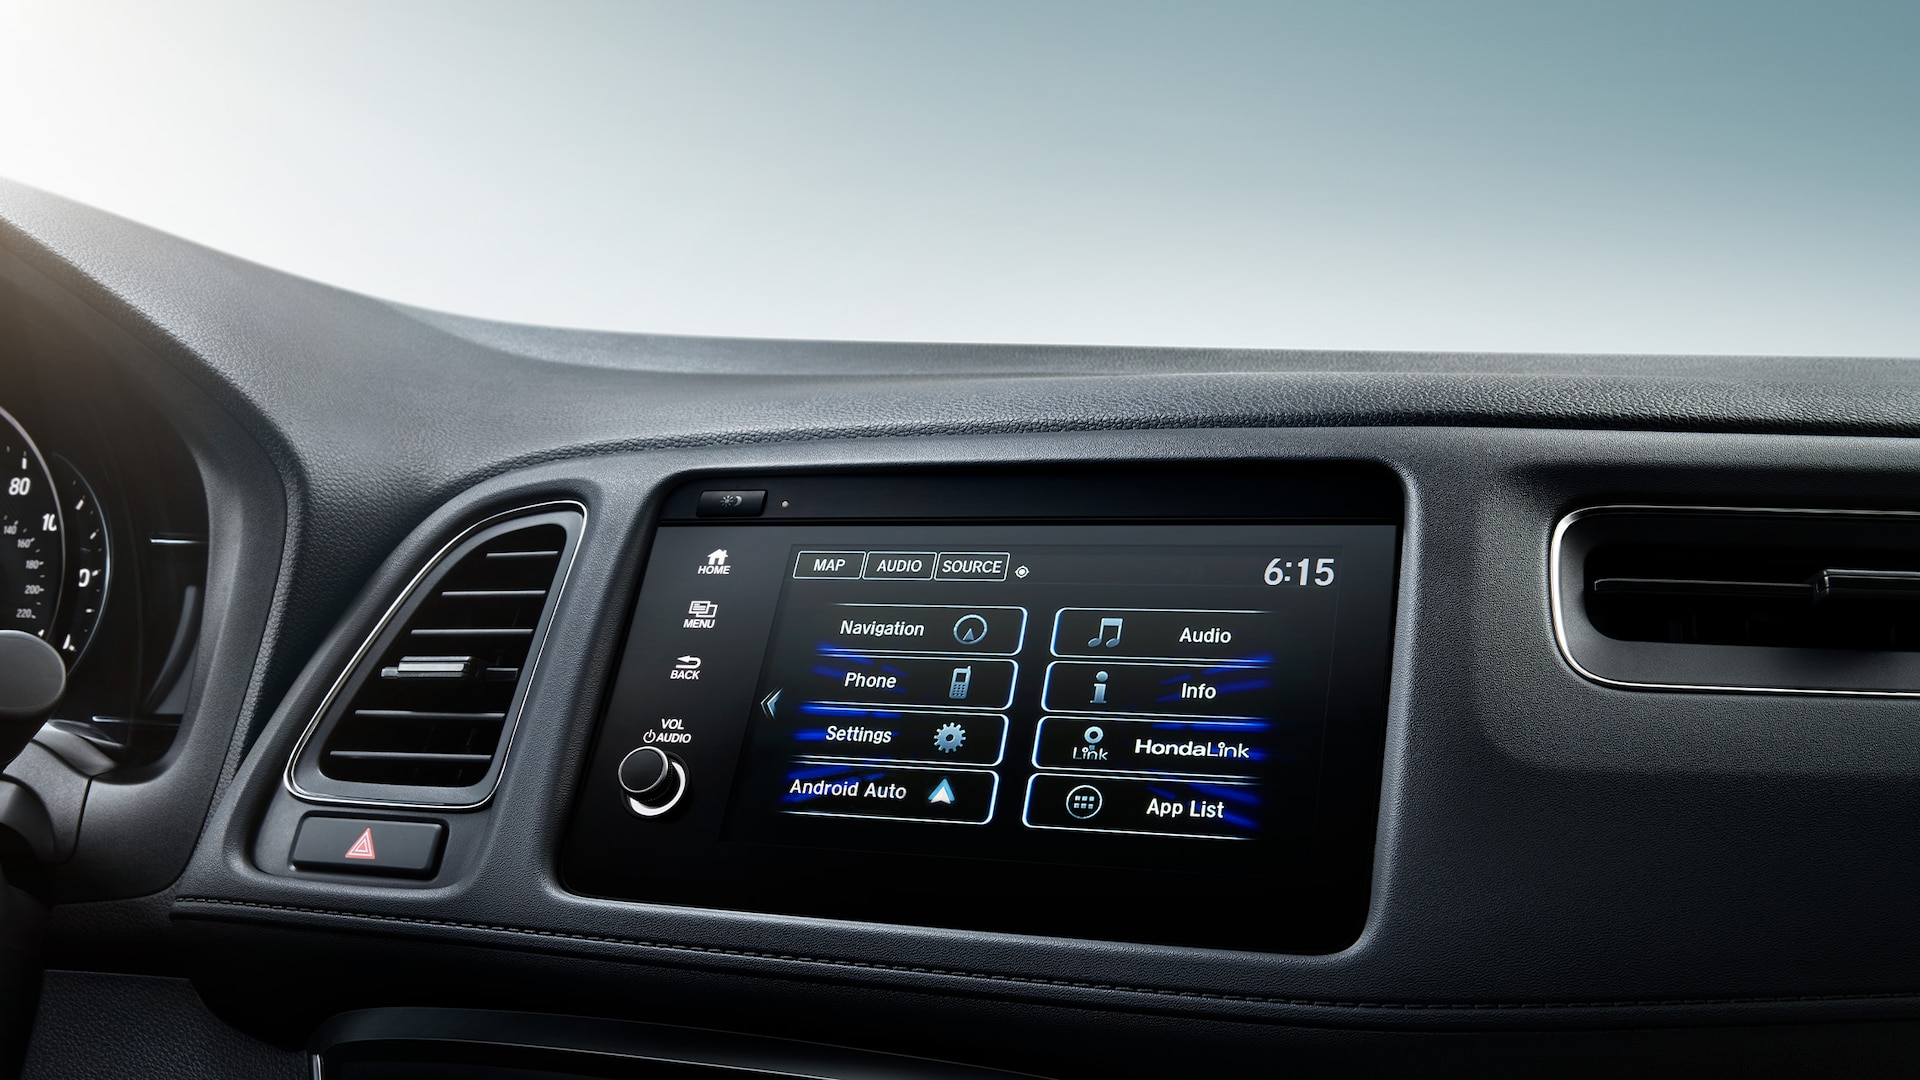 7-inch Display Audio touch-screen detail on the 2021 Honda HR-V EX-L.